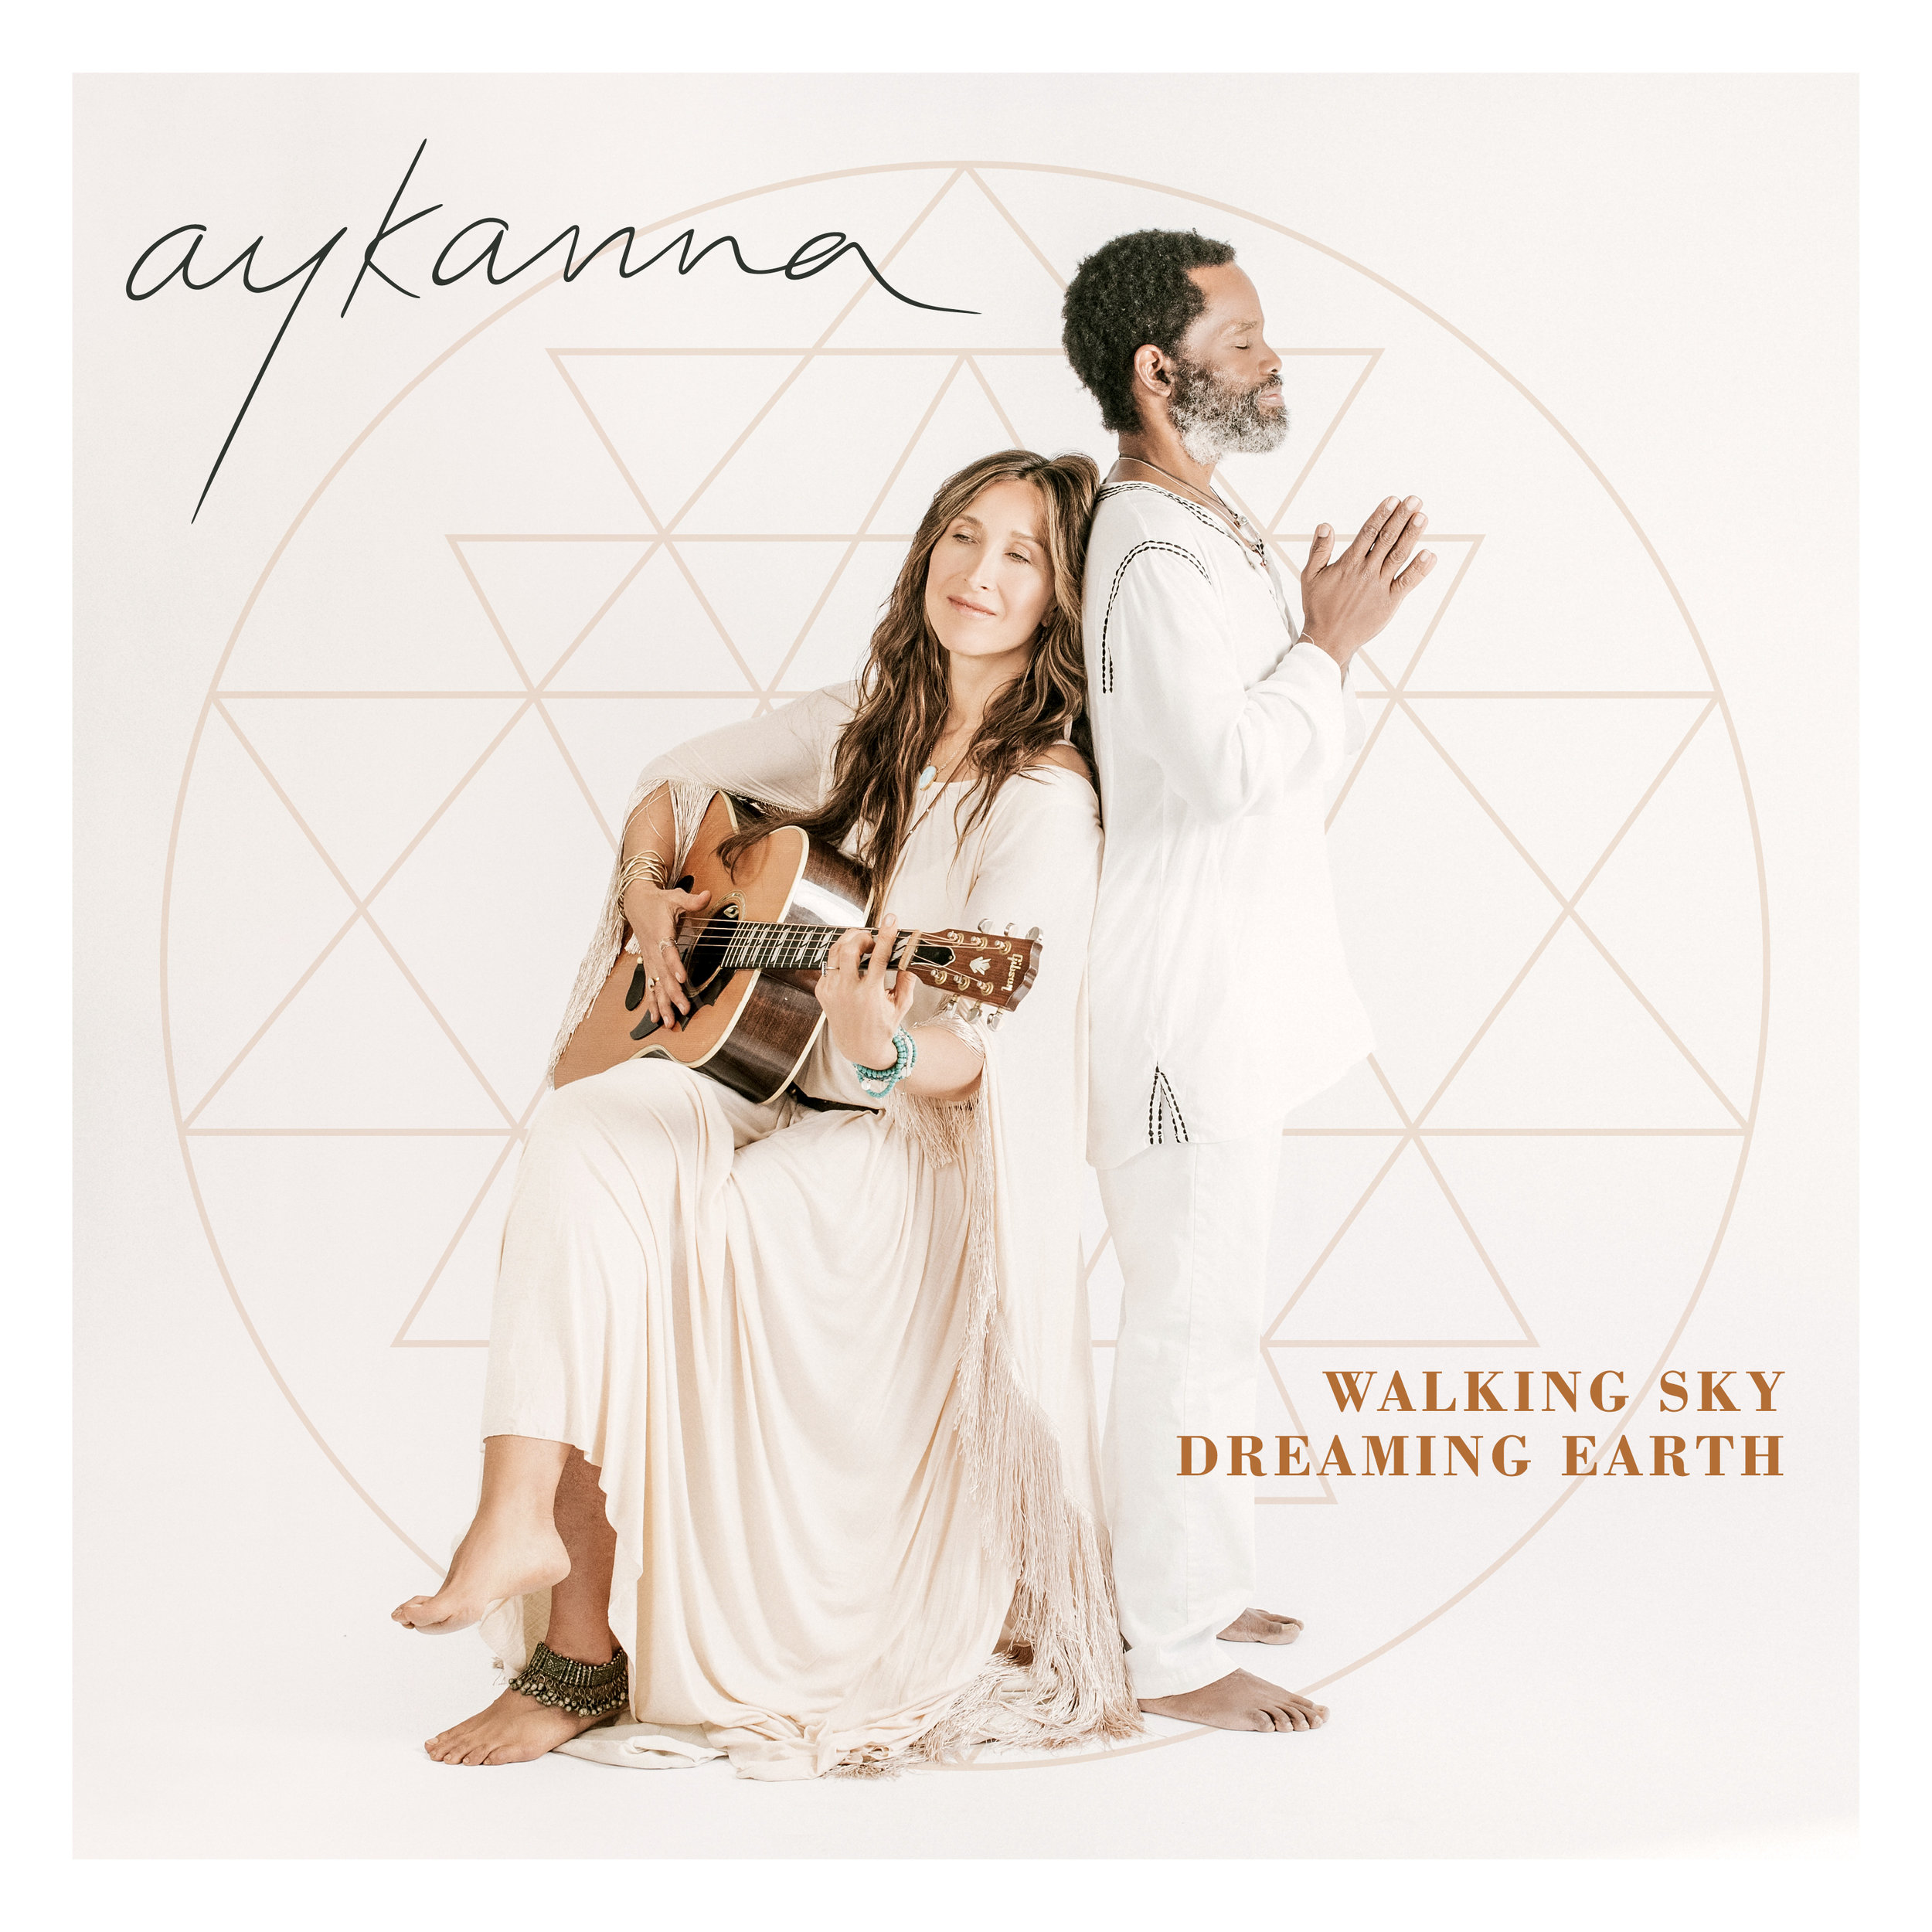 Aykanna_WalkingSkyDreamingEarth_FrontCover_3000x3000.jpg